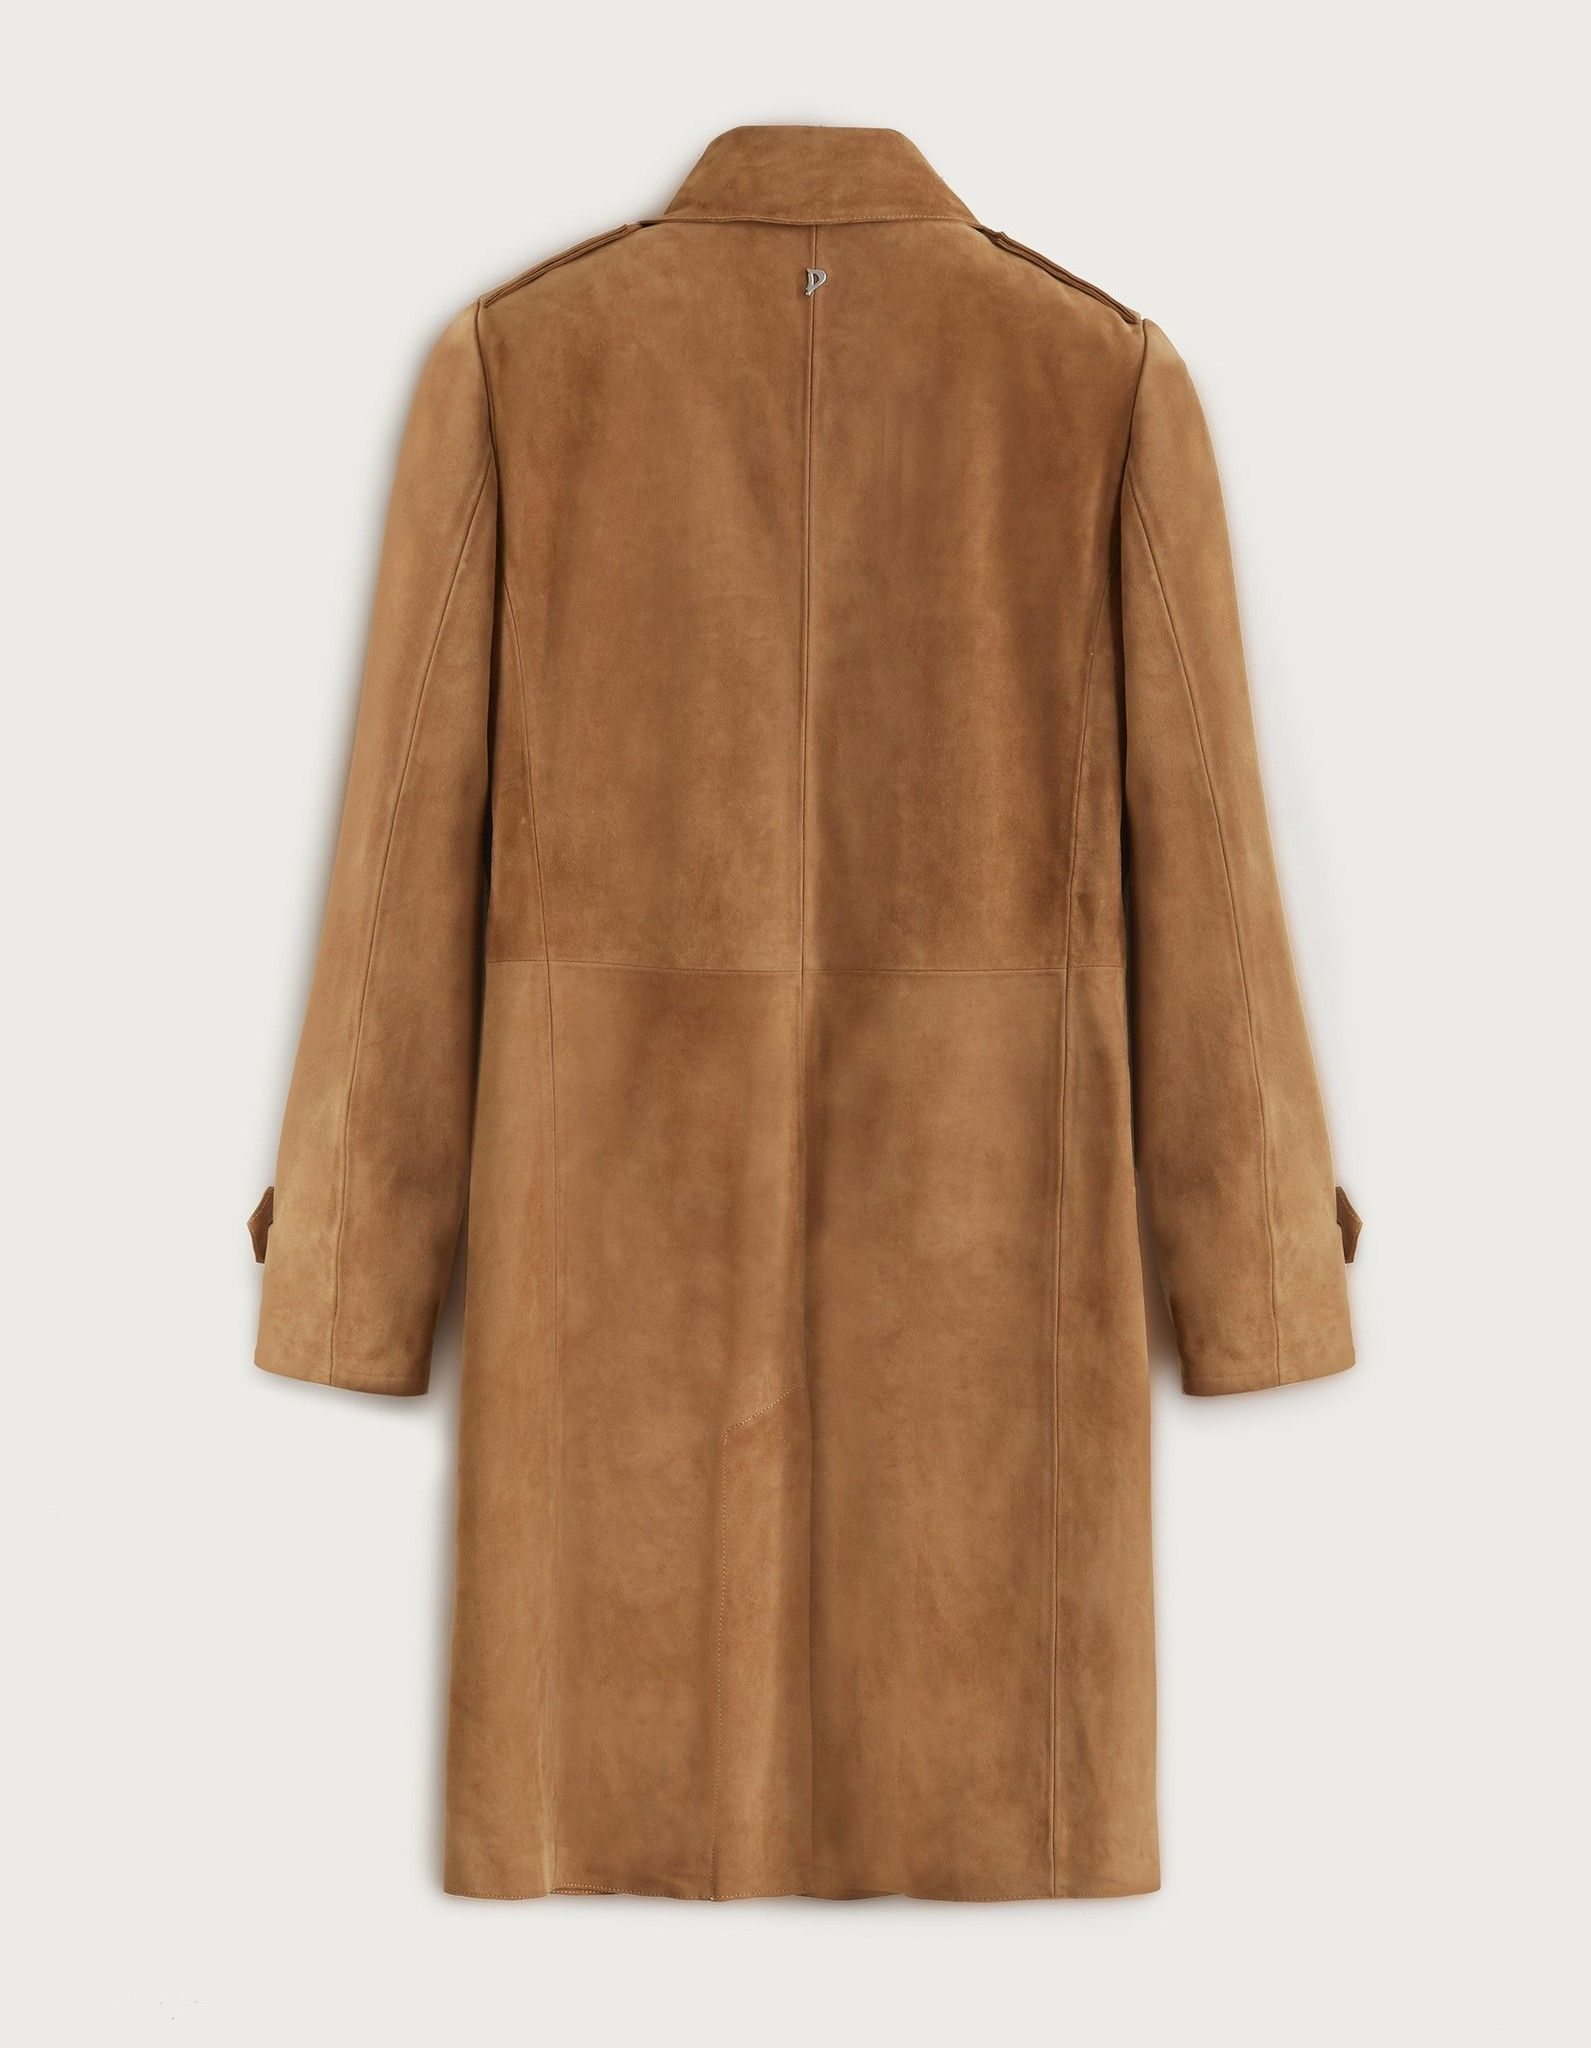 DONDUP TRENCH IN PELLE SCAMOSCIATA